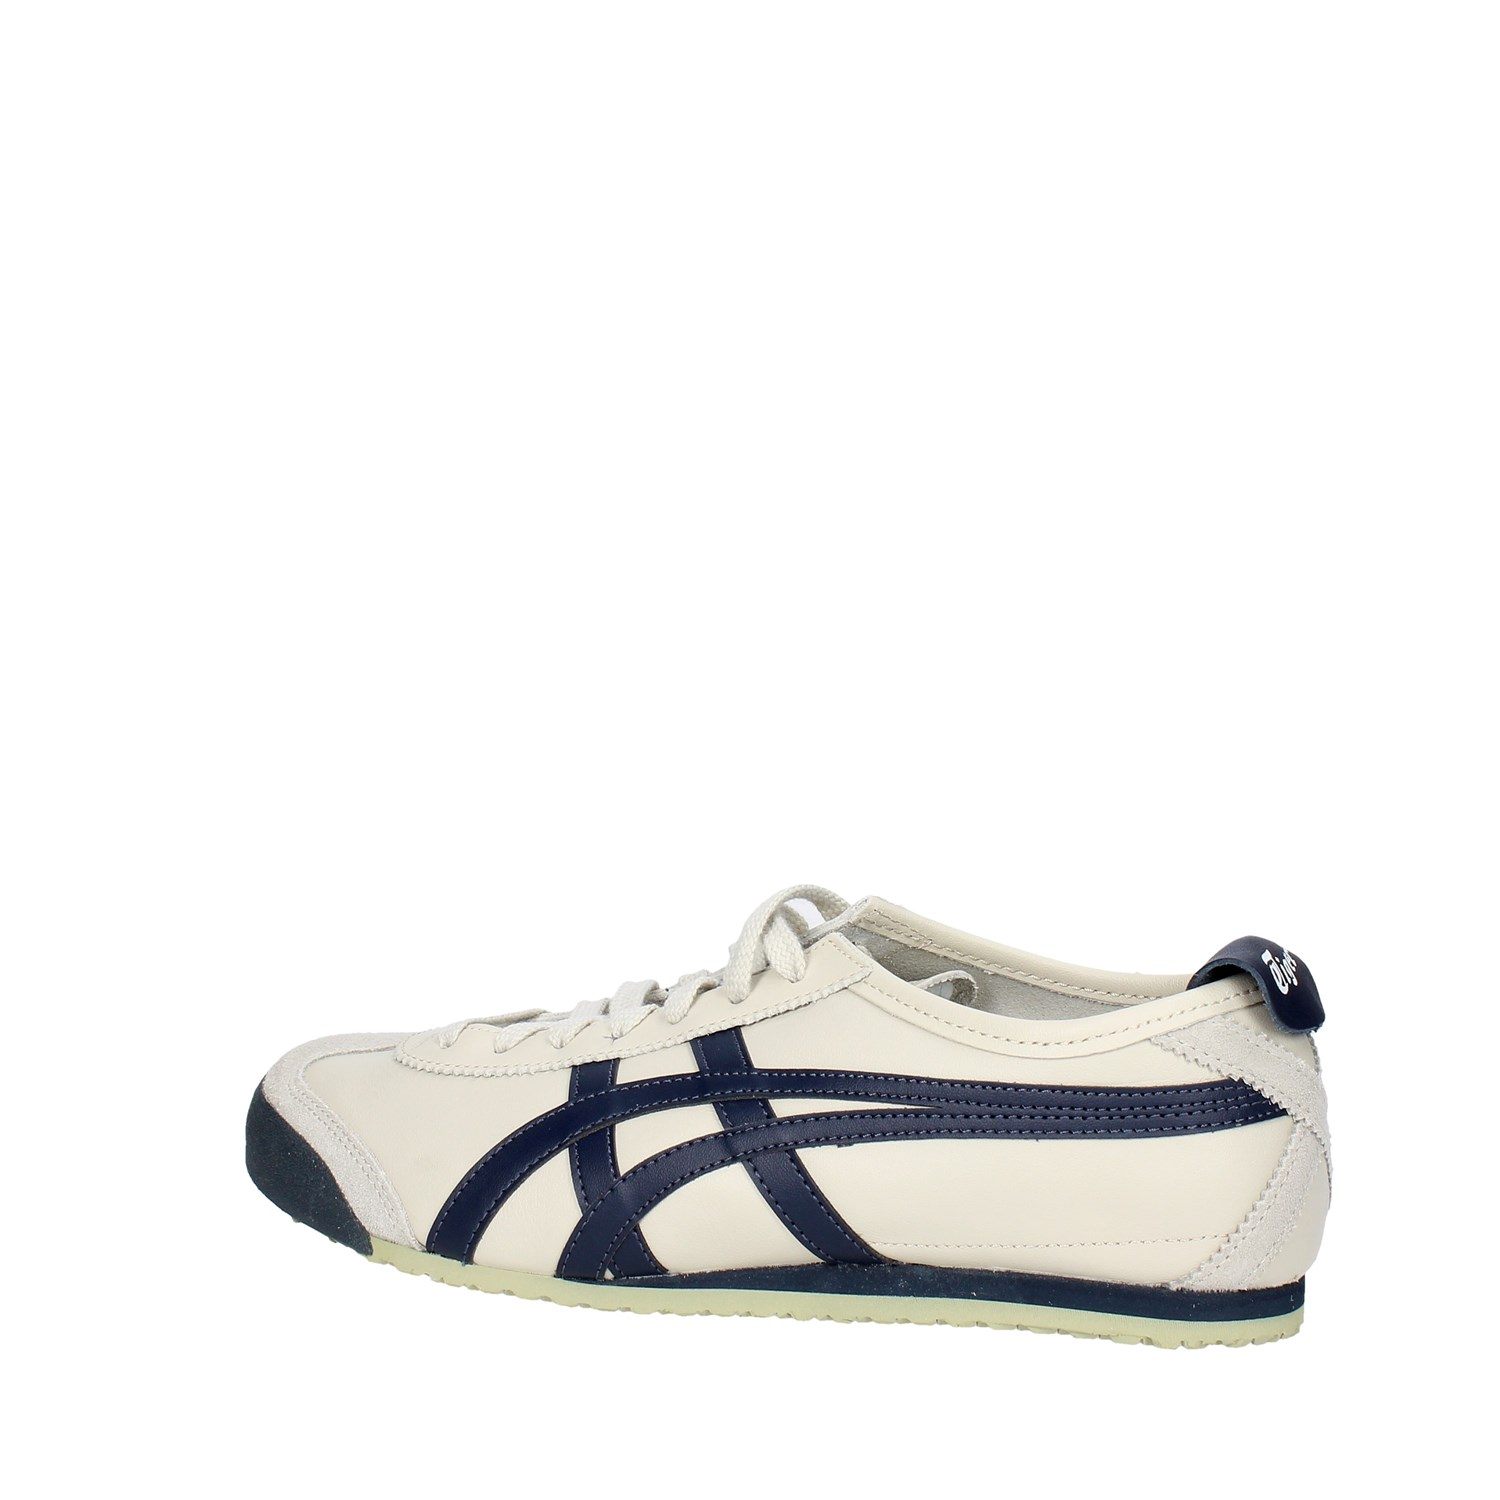 the best attitude 42e53 7a636 Details about Onitsuka Tiger DL408..1659 Beige/Blue Low Sneakers Man  Fall/Winter